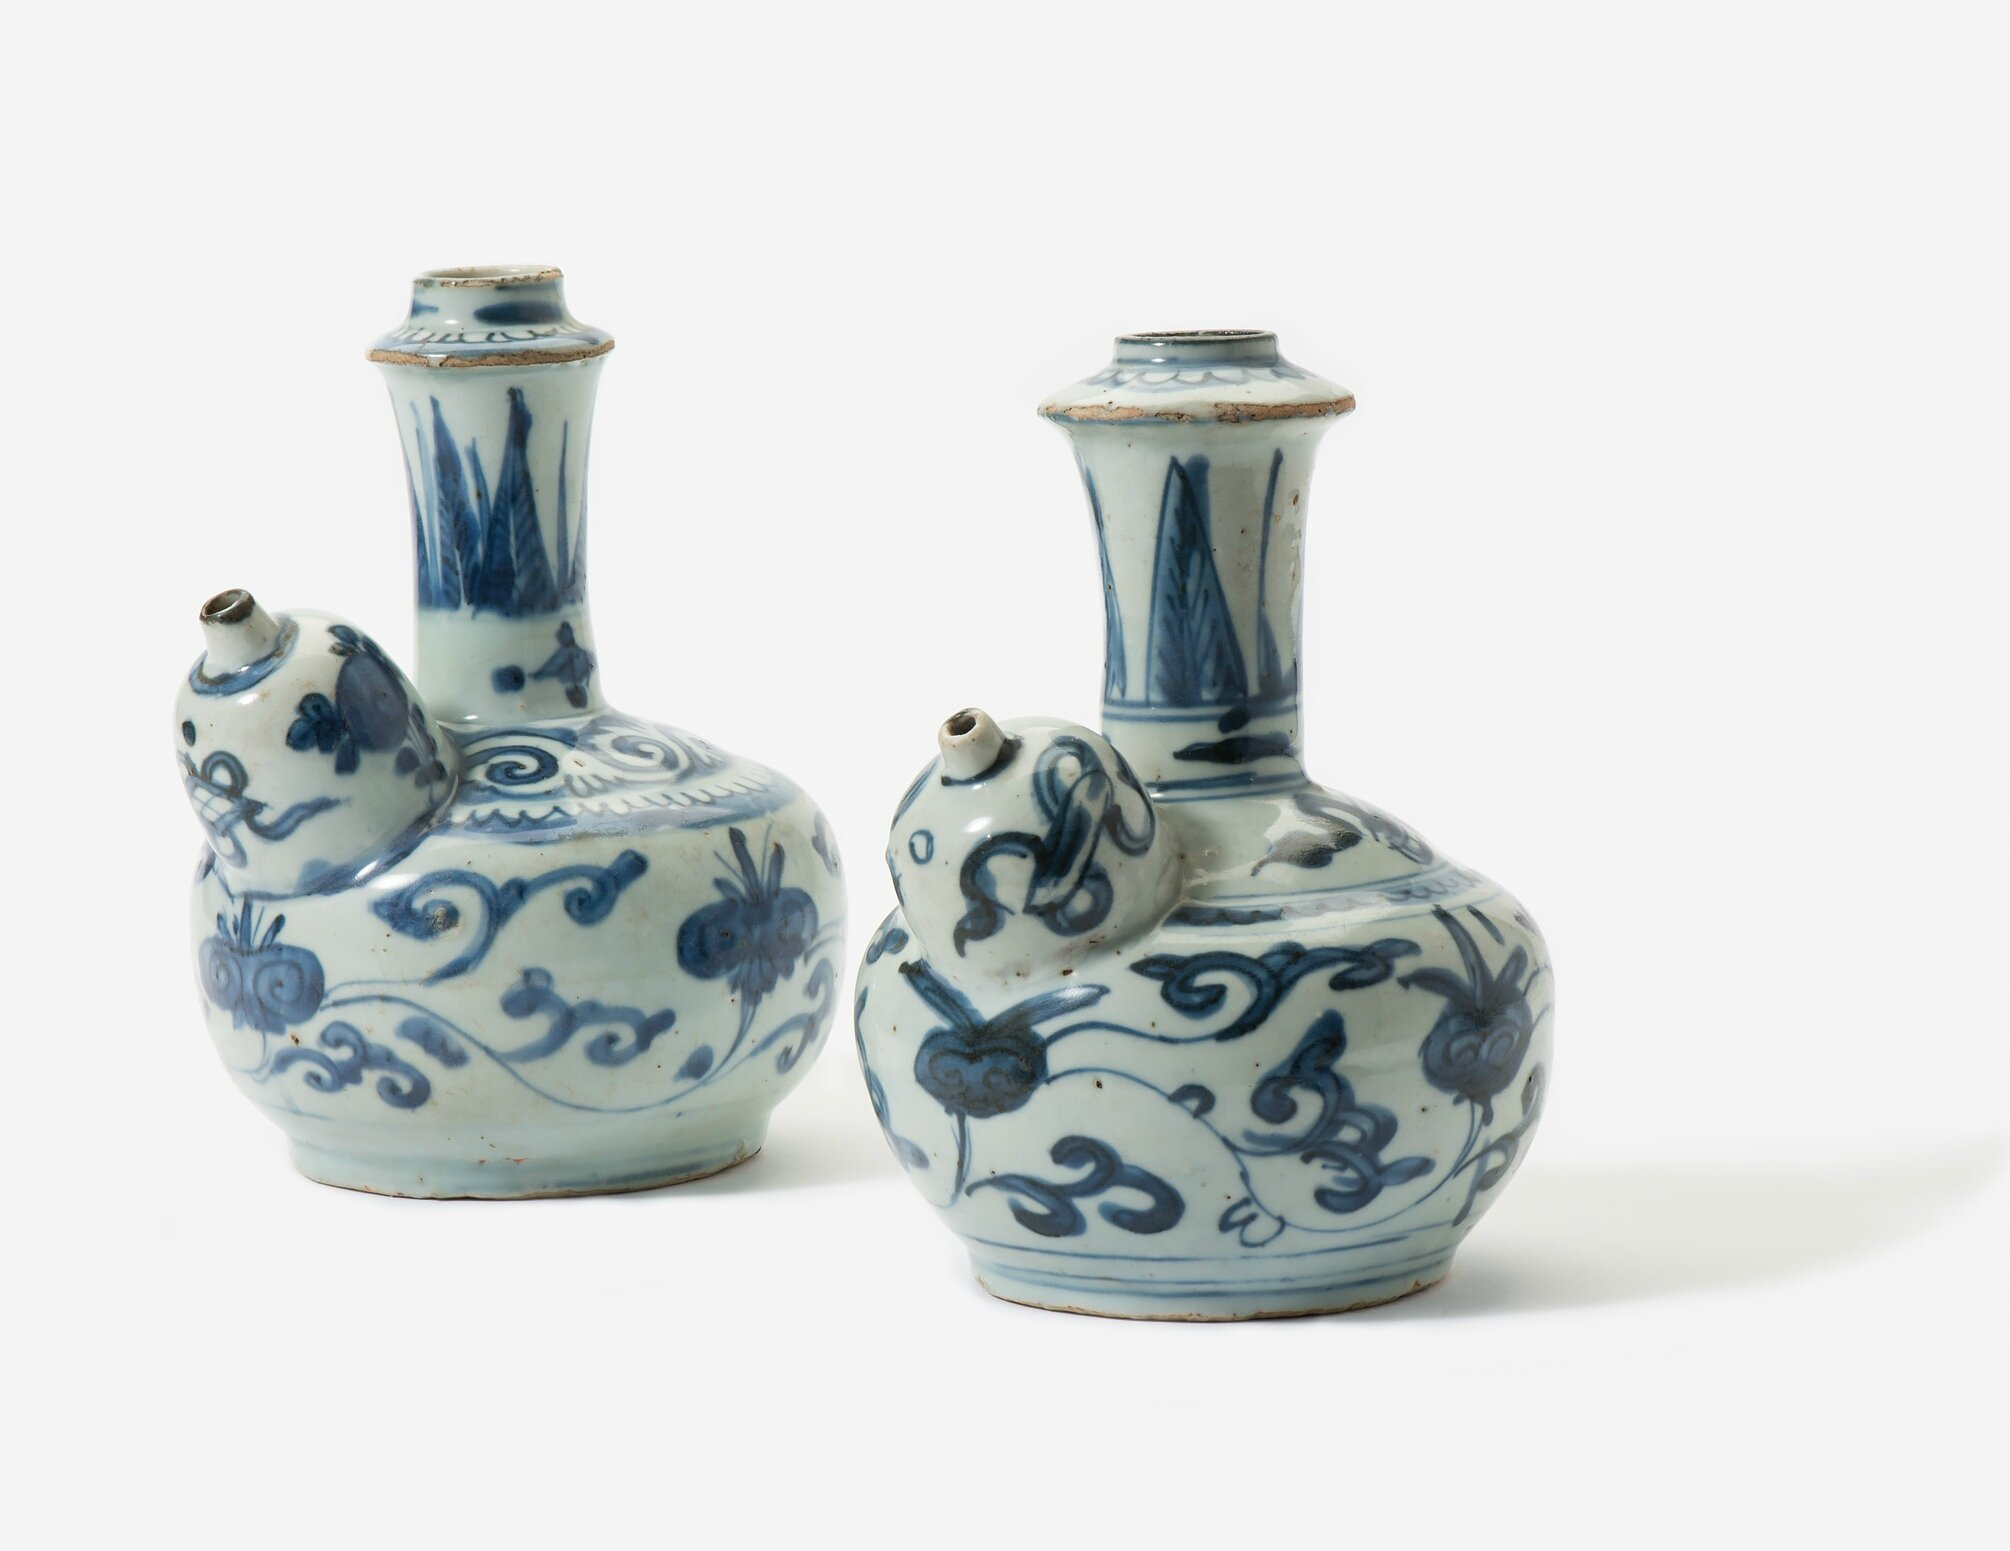 Two blue and white kendi, Wanli period (1573-1619)